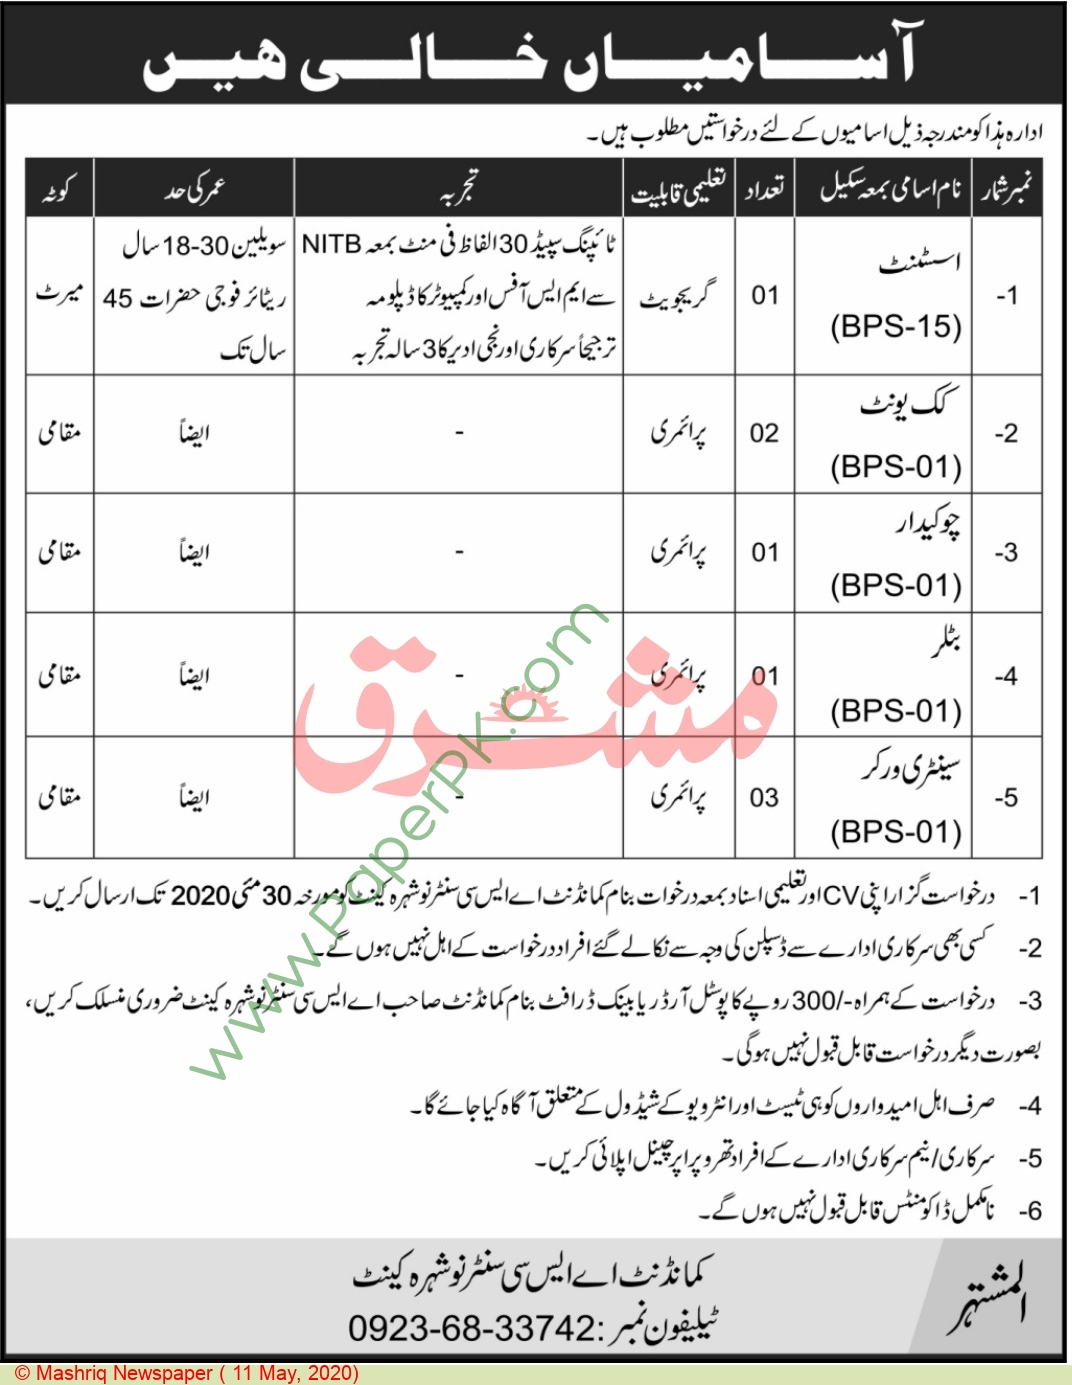 Pakistan Army jobs newspaper ad for Peon in Nowshera